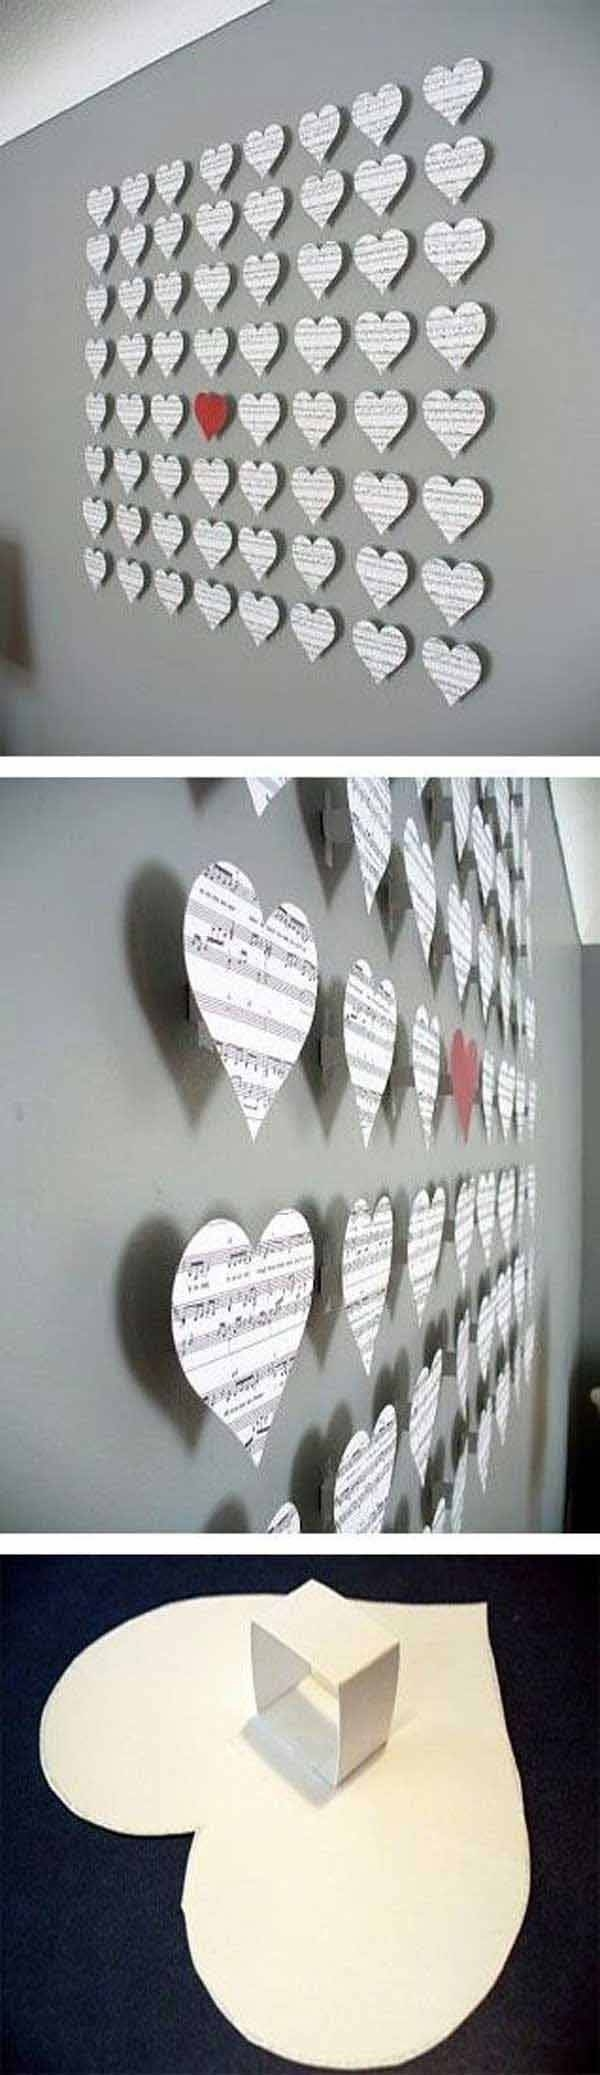 25+ Unique Cheap Wall Decor Ideas On Pinterest | Easy Wall Decor Pertaining To Most Recently Released Cheap Wall Art And Decor (View 18 of 20)